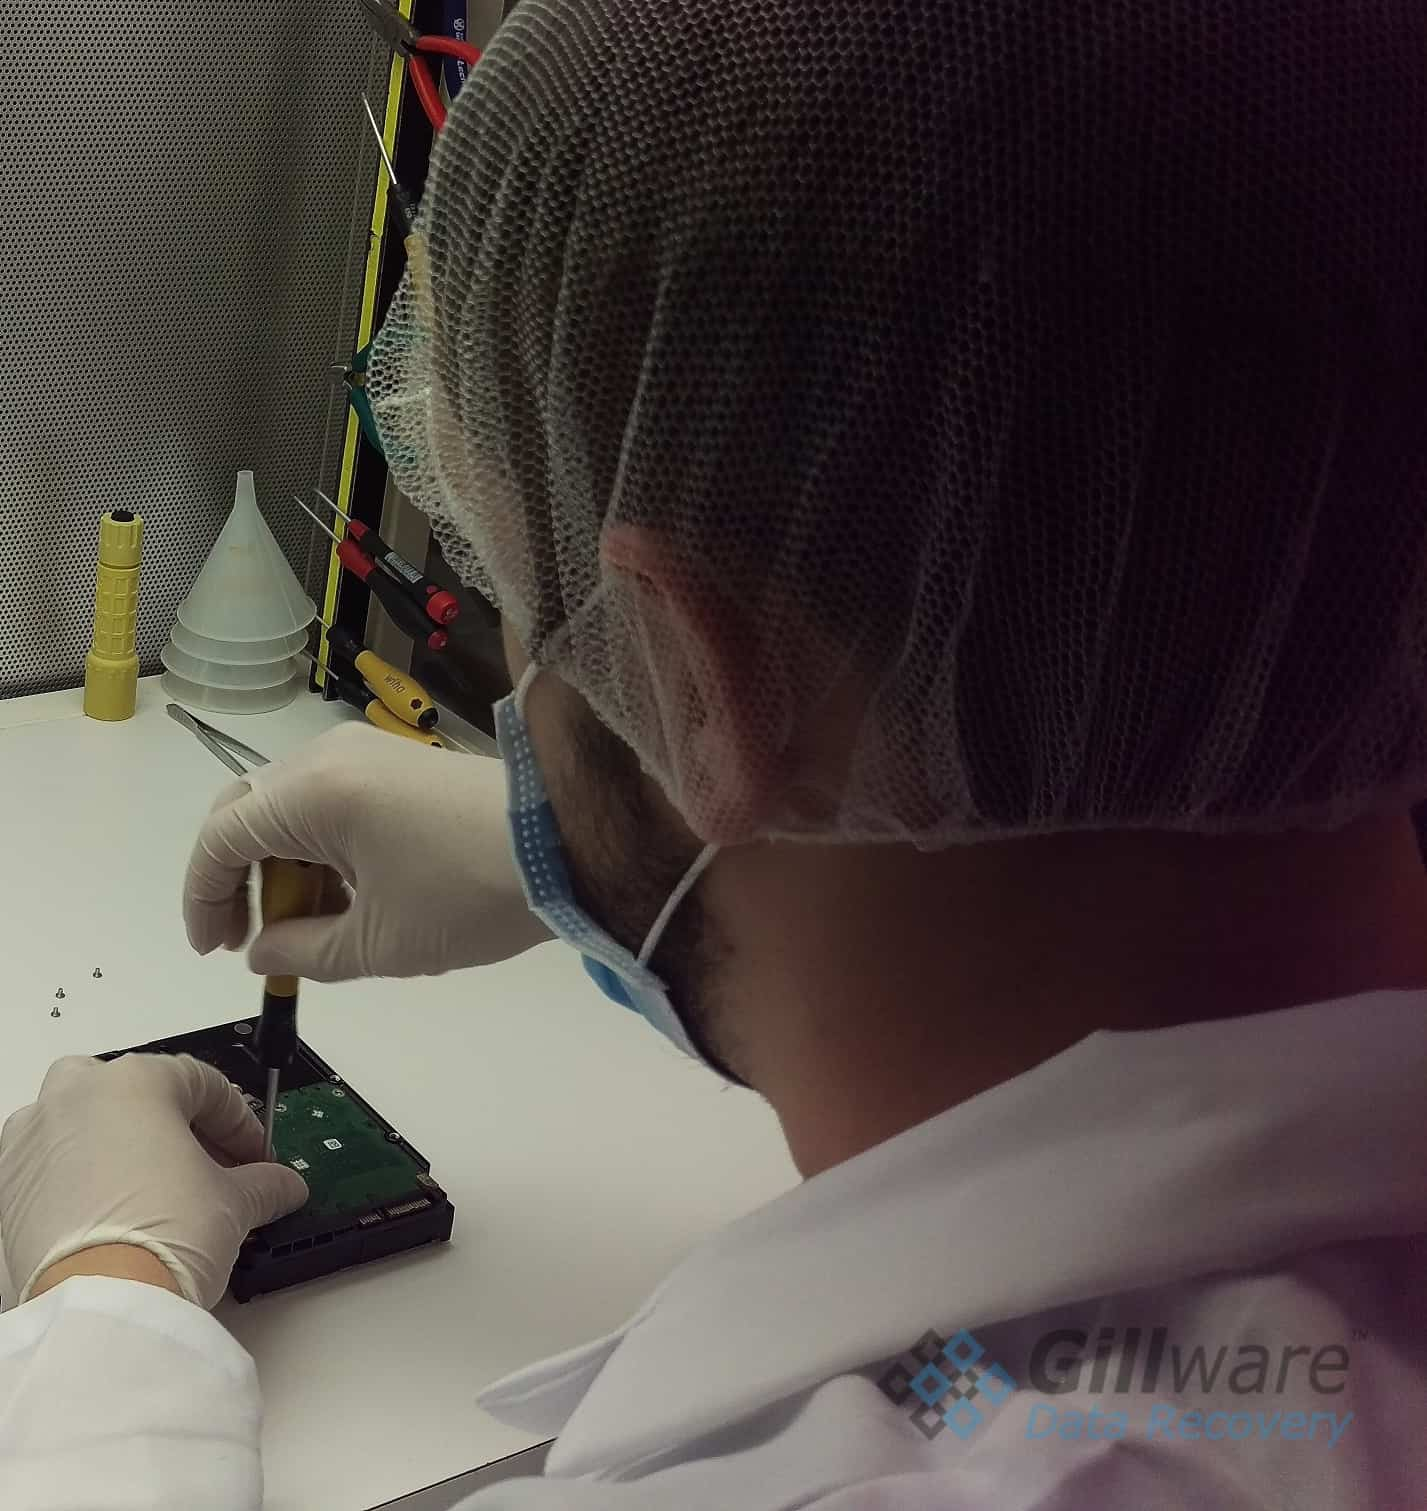 One of our RAID-0 recovery cleanroom engineers disassembling a hard drive for inspection